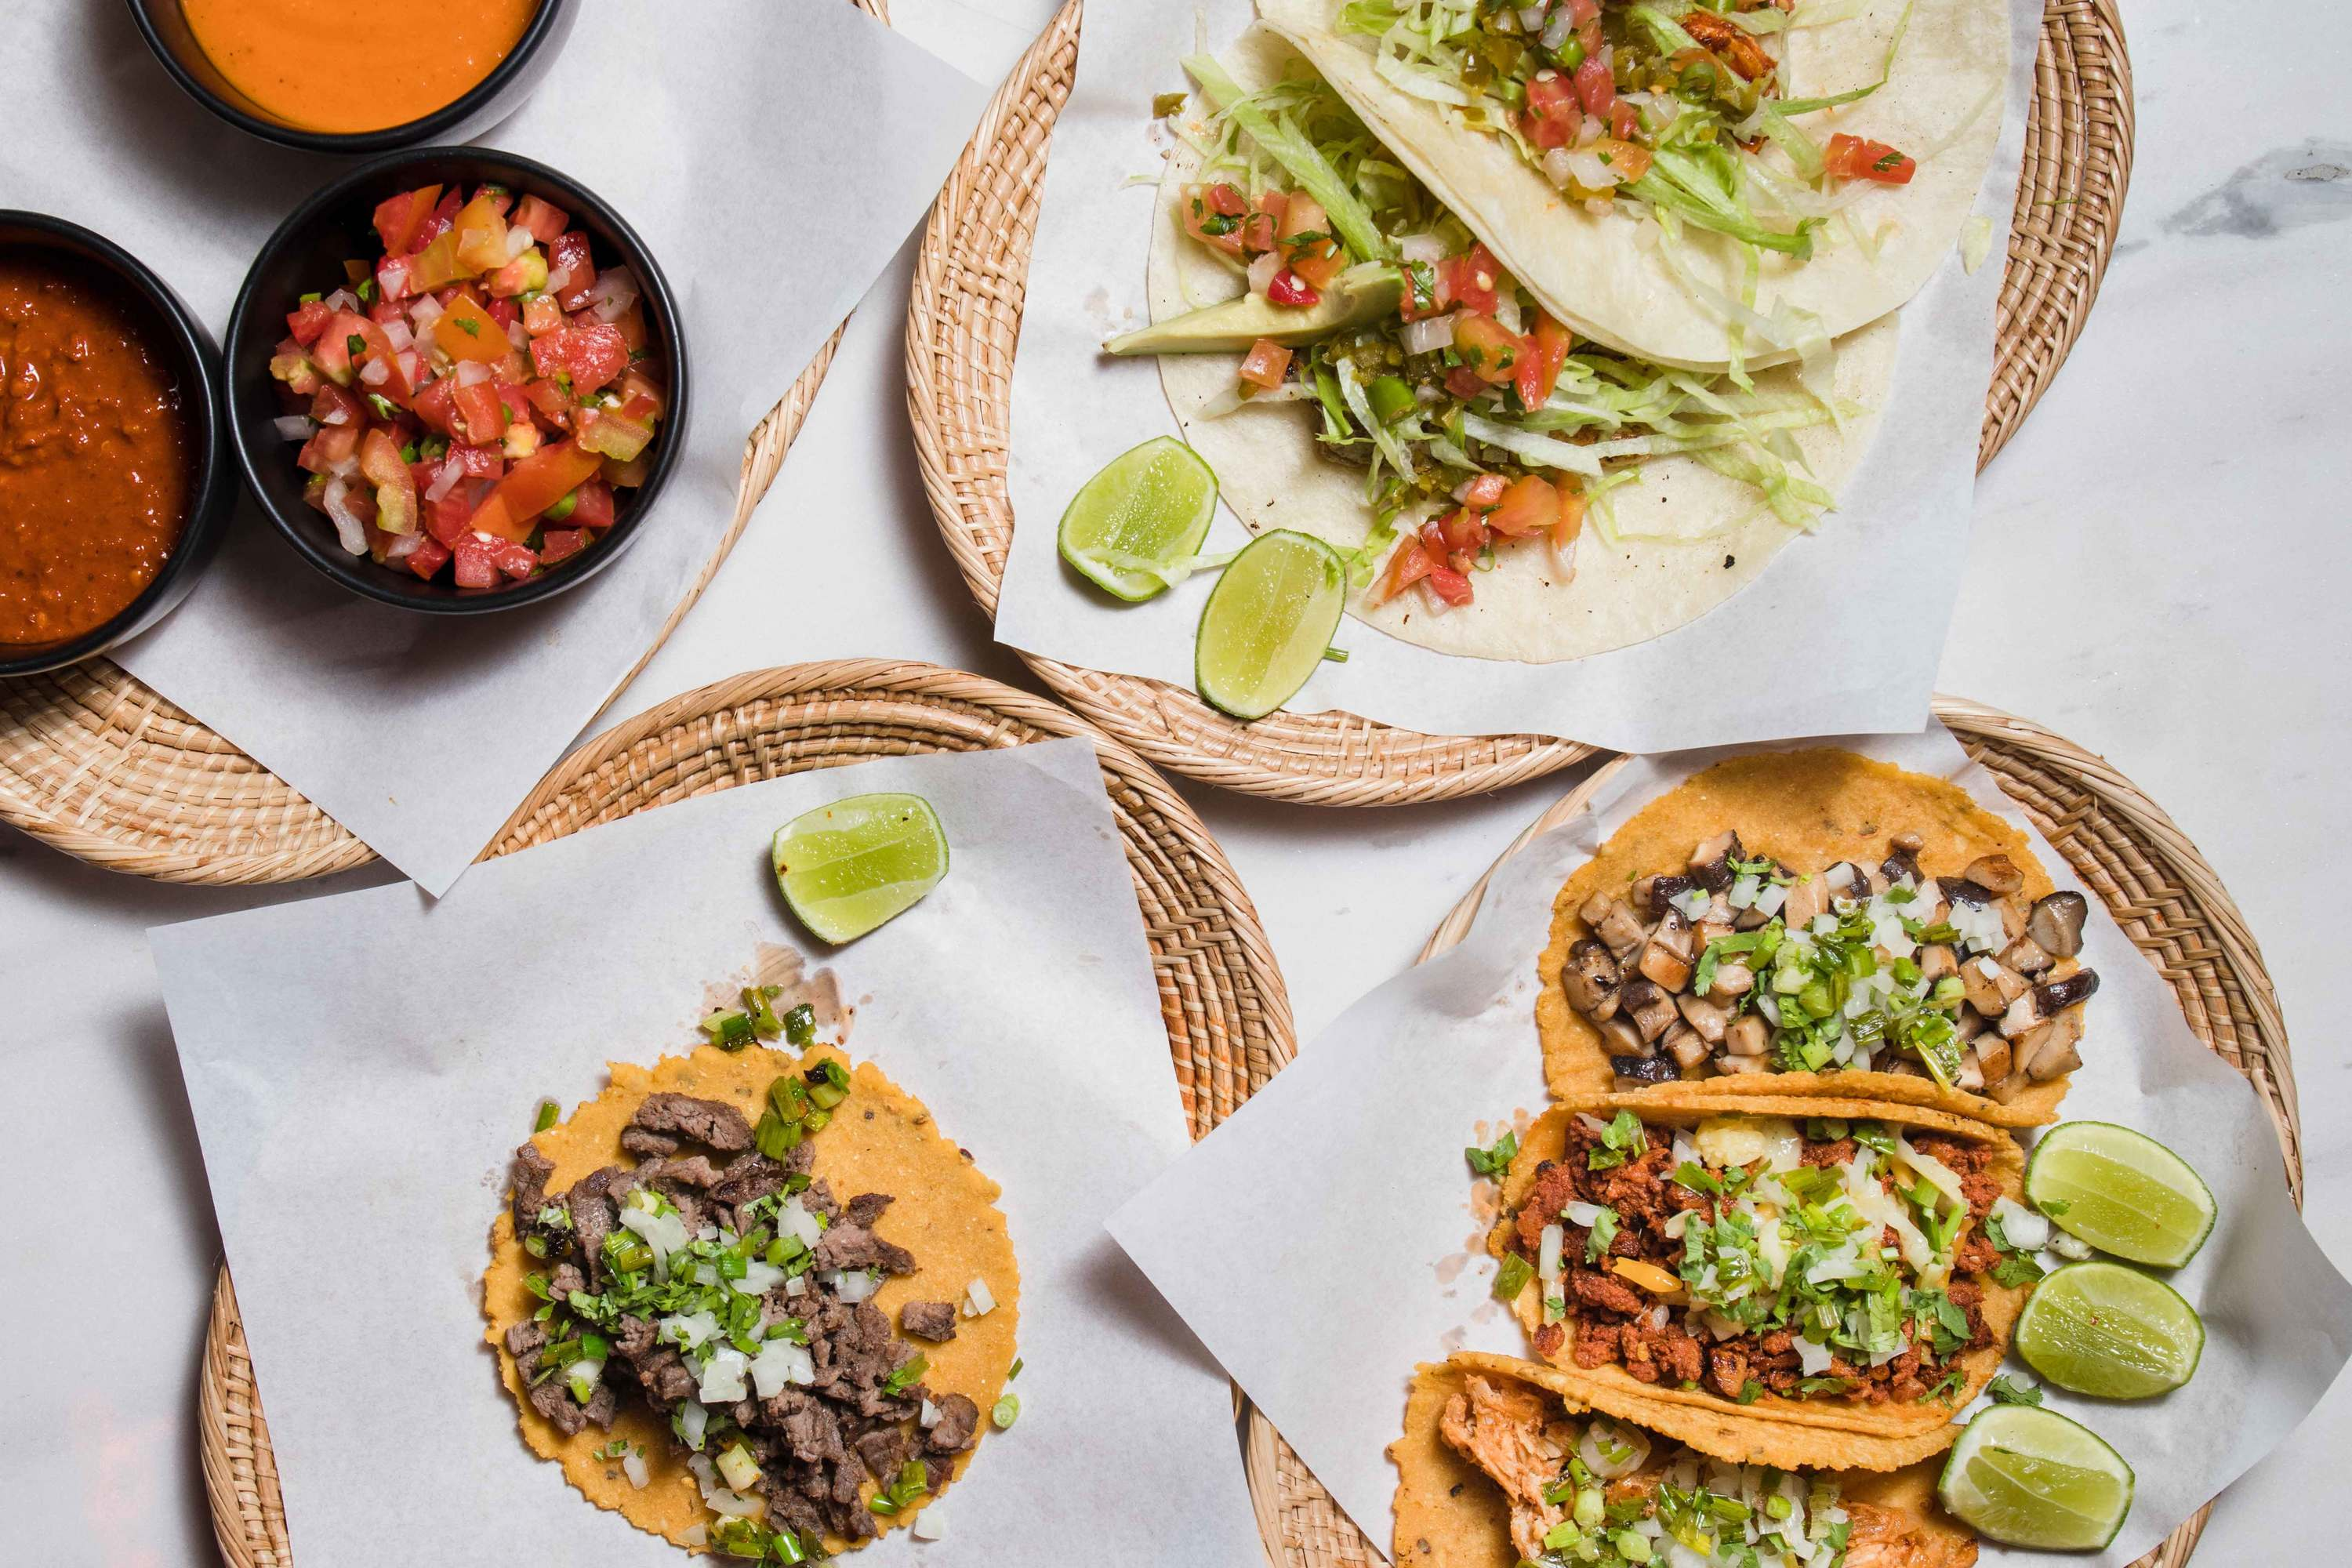 Slanted Taco serves authentic Mexican food